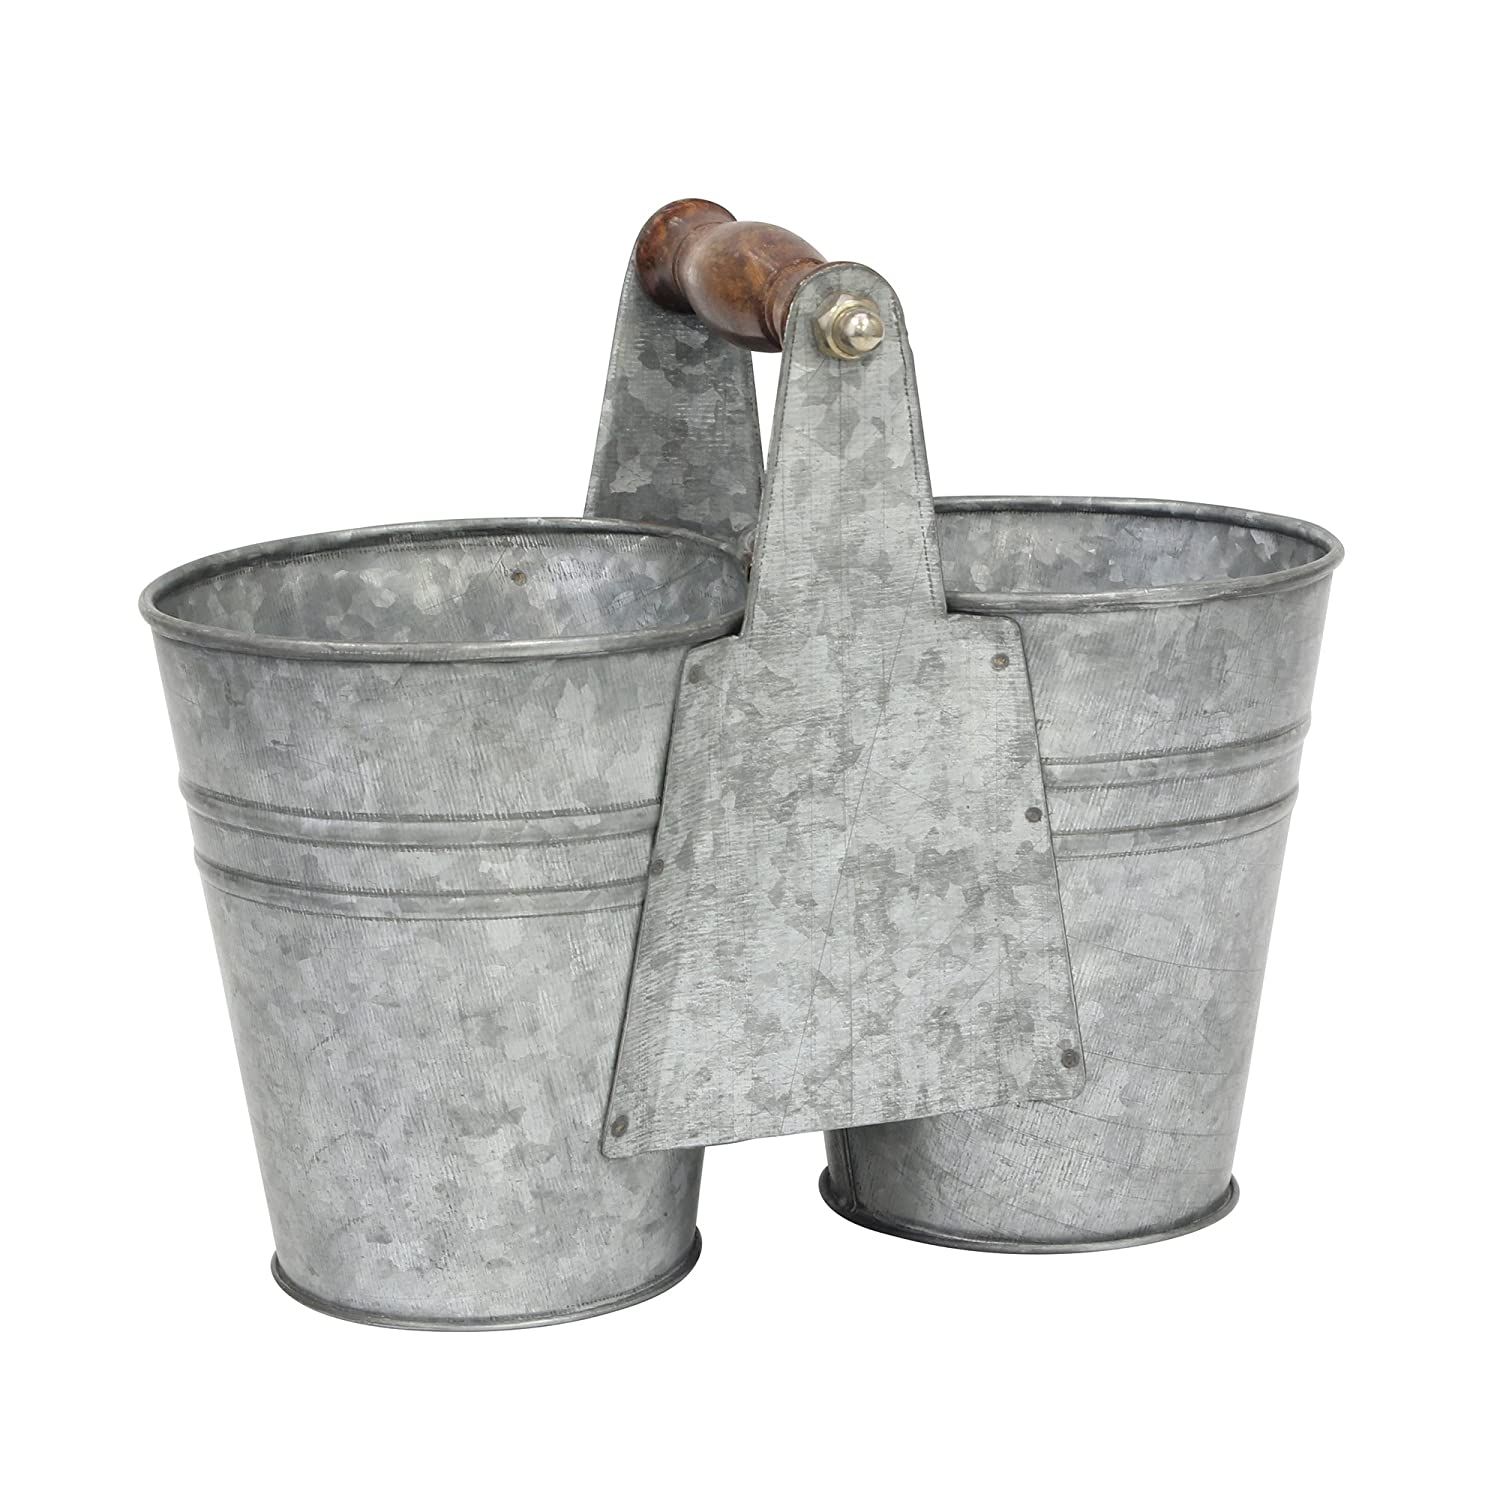 Stonebriar Conservatory Antique Galvanized Double Bucket with Wood Handle Silver